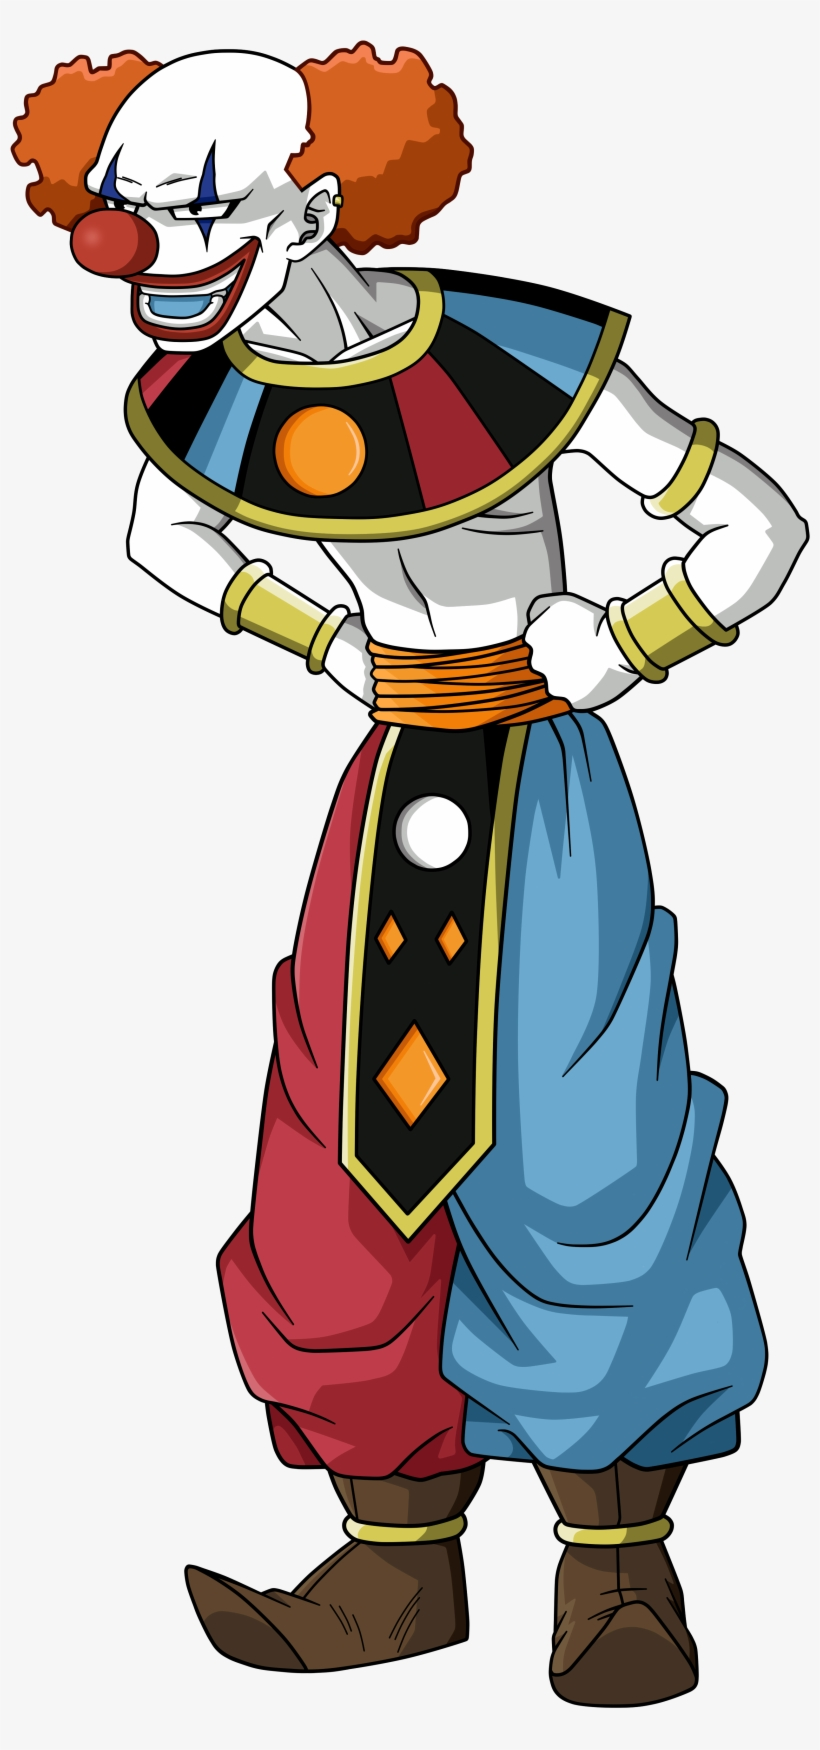 Vermouth Dragon Ball Super Png Png Image Transparent Png Free